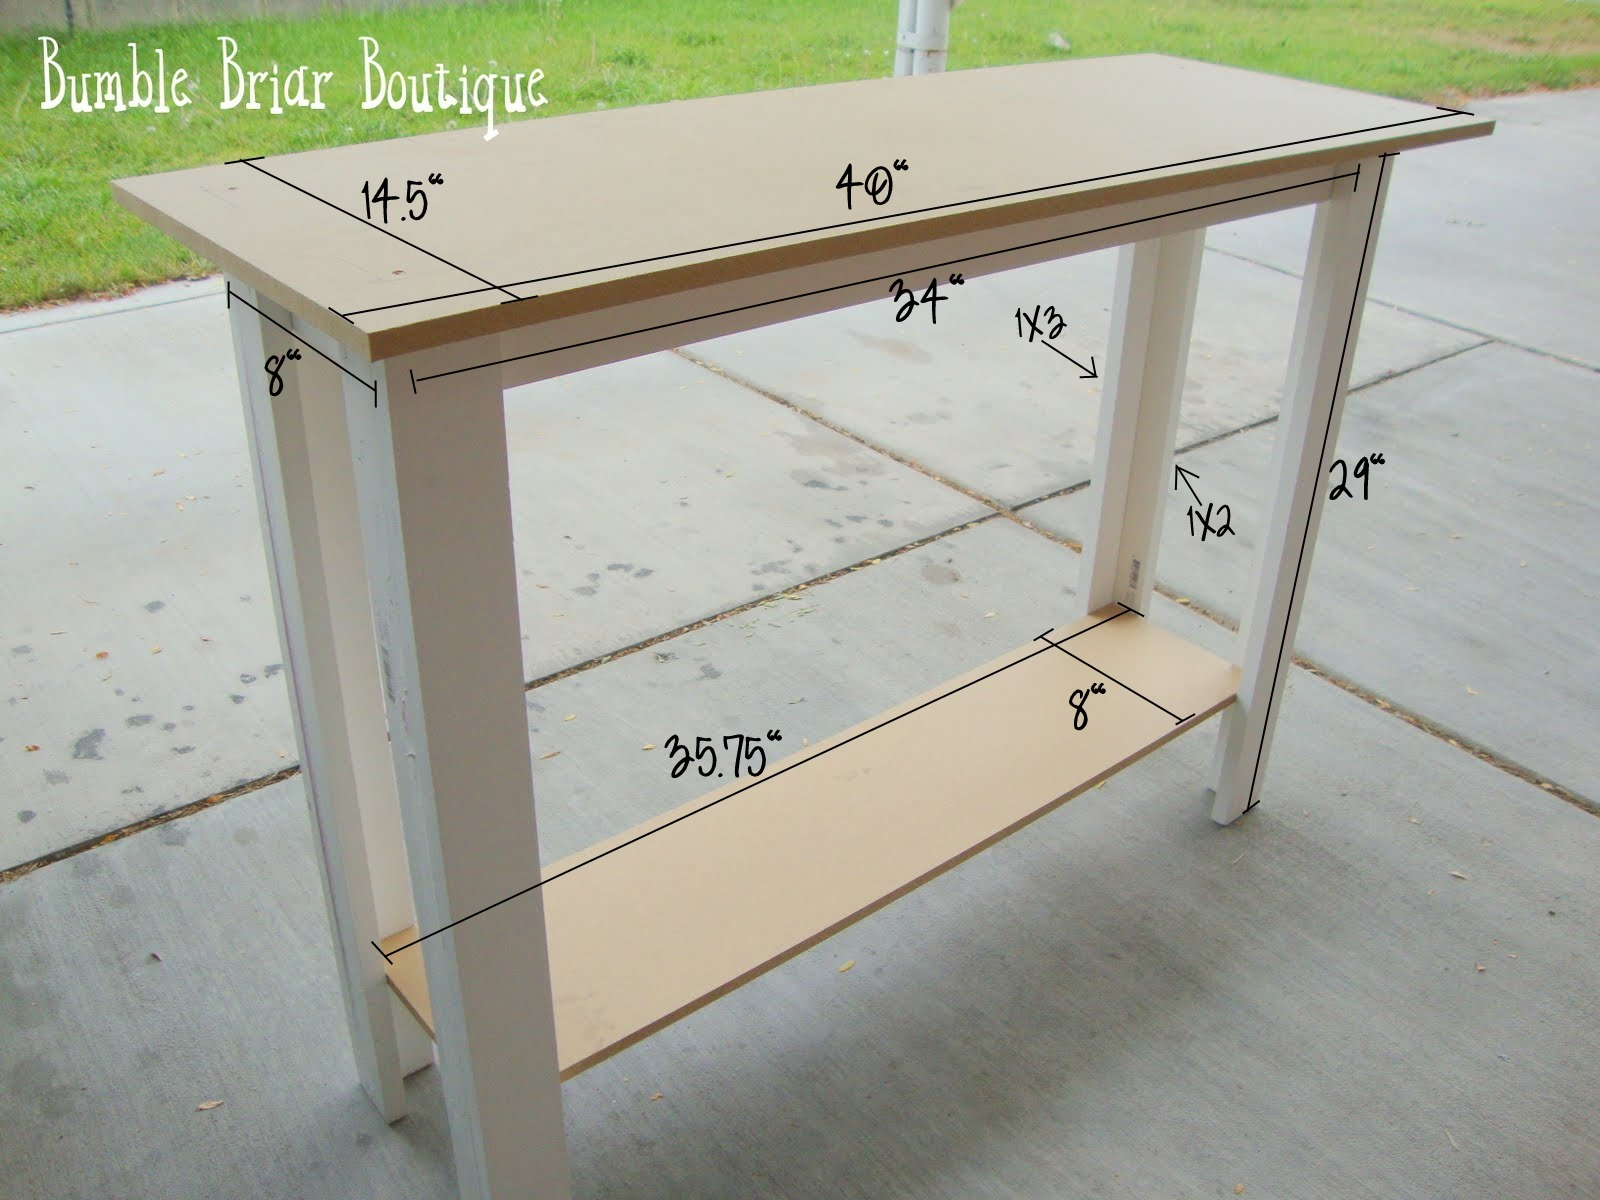 Standard Sofa Table Length On Wheels Bumble Briar Boutique Measurements For